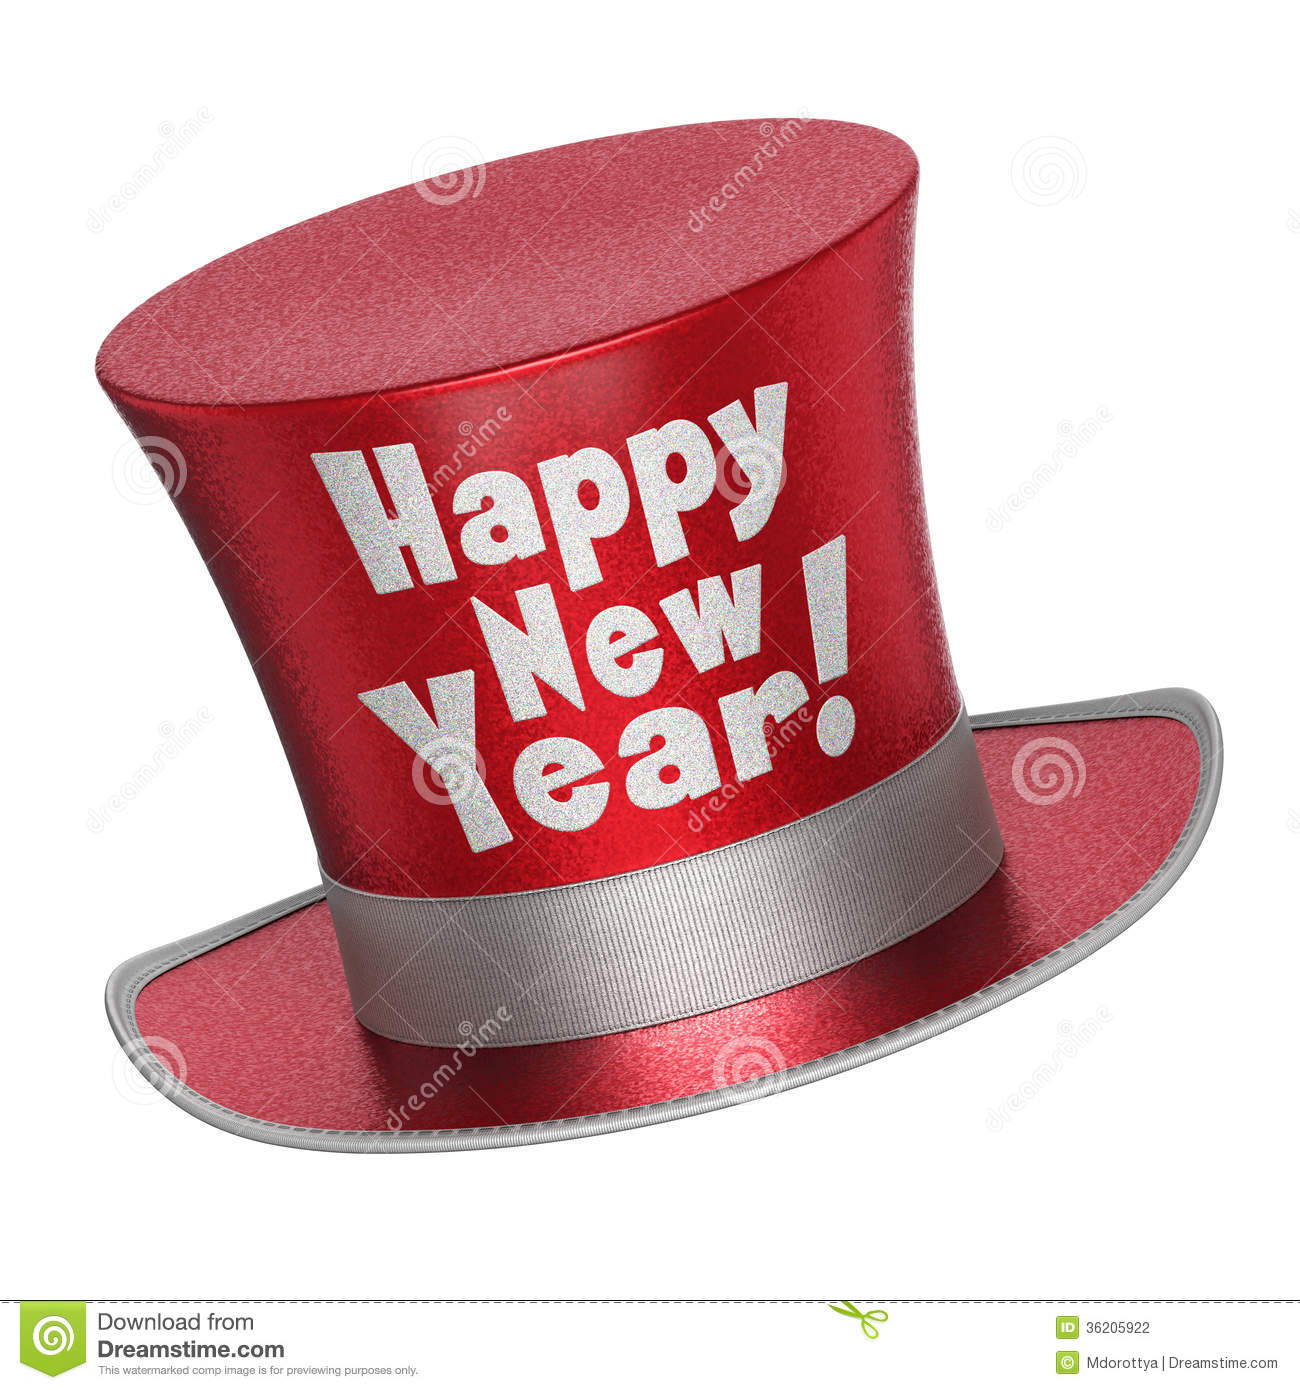 3D render of a red Happy New Year top hat with shiny metallic flakes ...